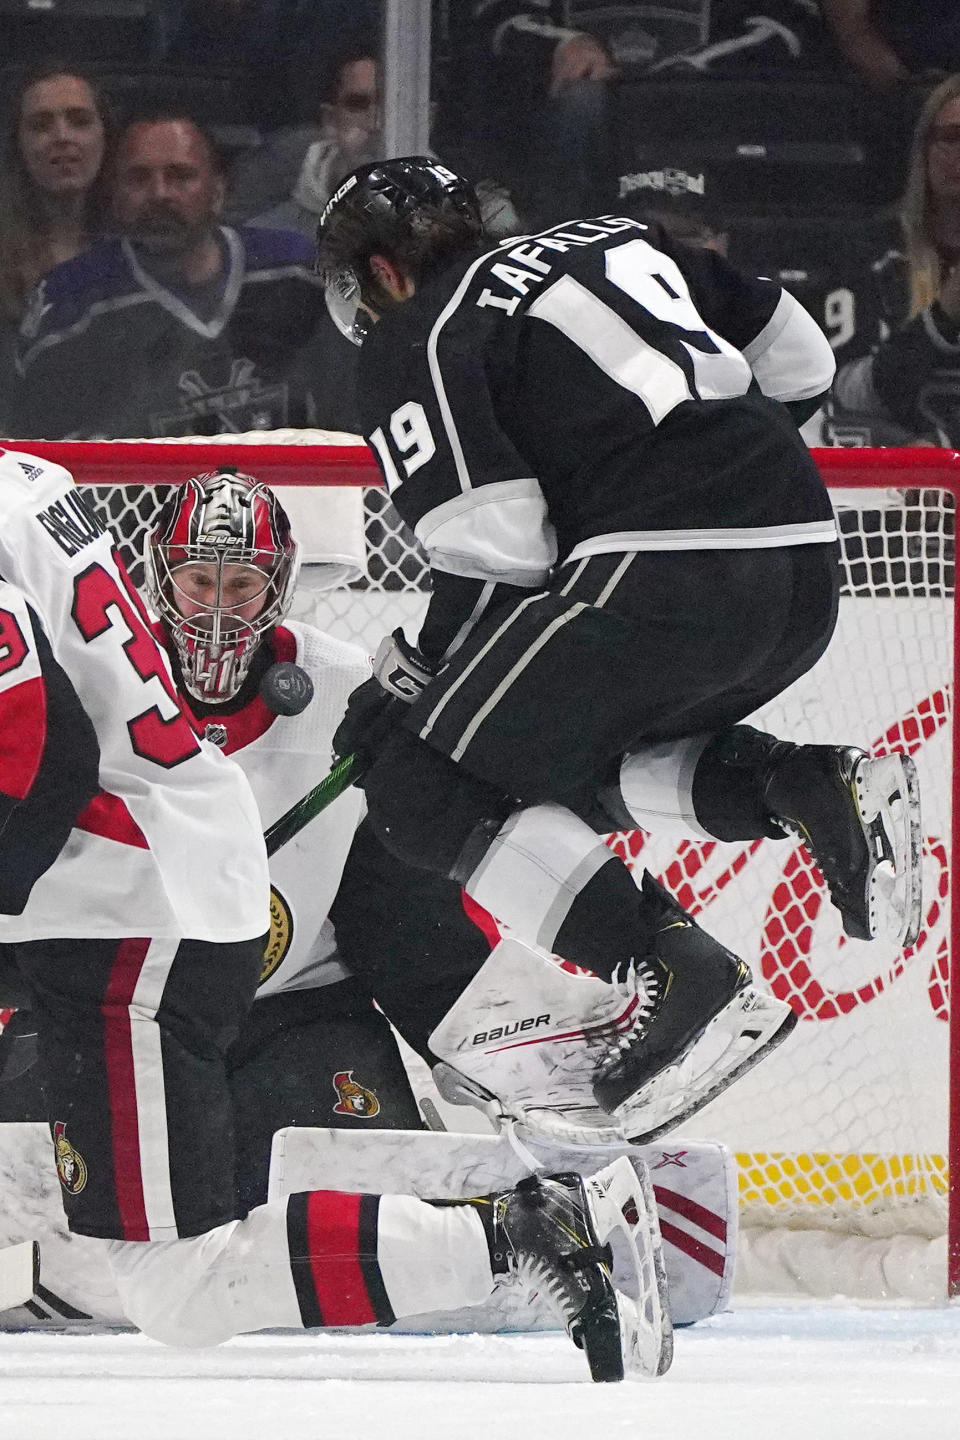 Los Angeles Kings left wing Alex Iafallo, right, jumps out of the way of the puck as Ottawa Senators goaltender Craig Anderson makes a save during the first period of an NHL hockey game Wednesday, March 11, 2020, in Los Angeles. (AP Photo/Mark J. Terrill)